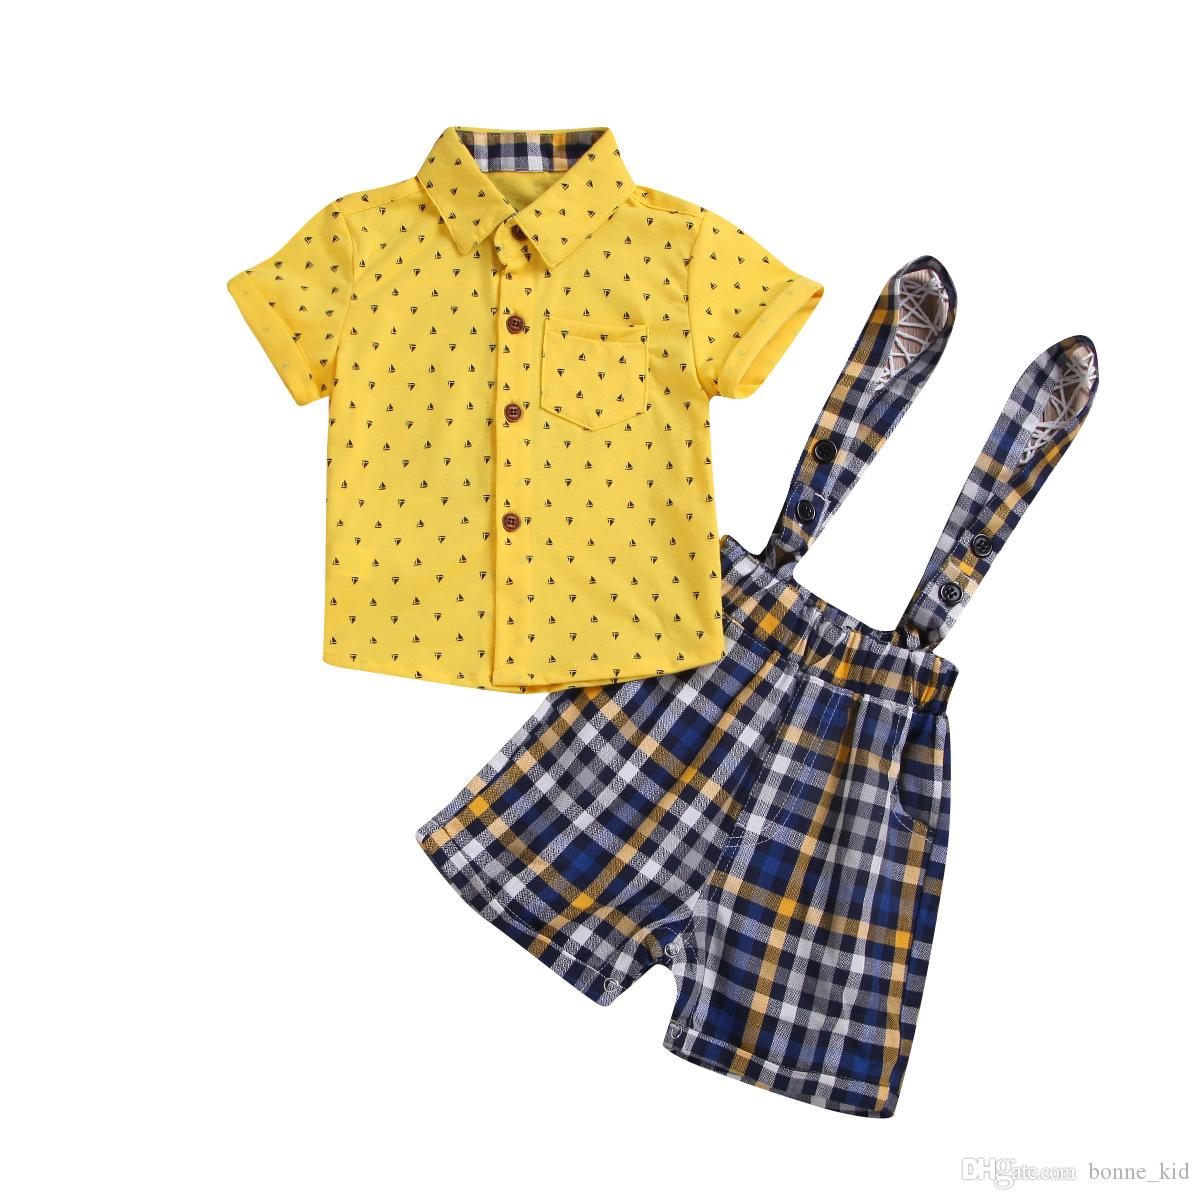 c4075a83d35 2019 Newborn Baby Boys Plaid Overalls Yellow Shirts Set Outfit Baby Kids  Boys Sailboat Clothes Cute Summer Little Gentlemen Suit 0 24M From  Bonne kid